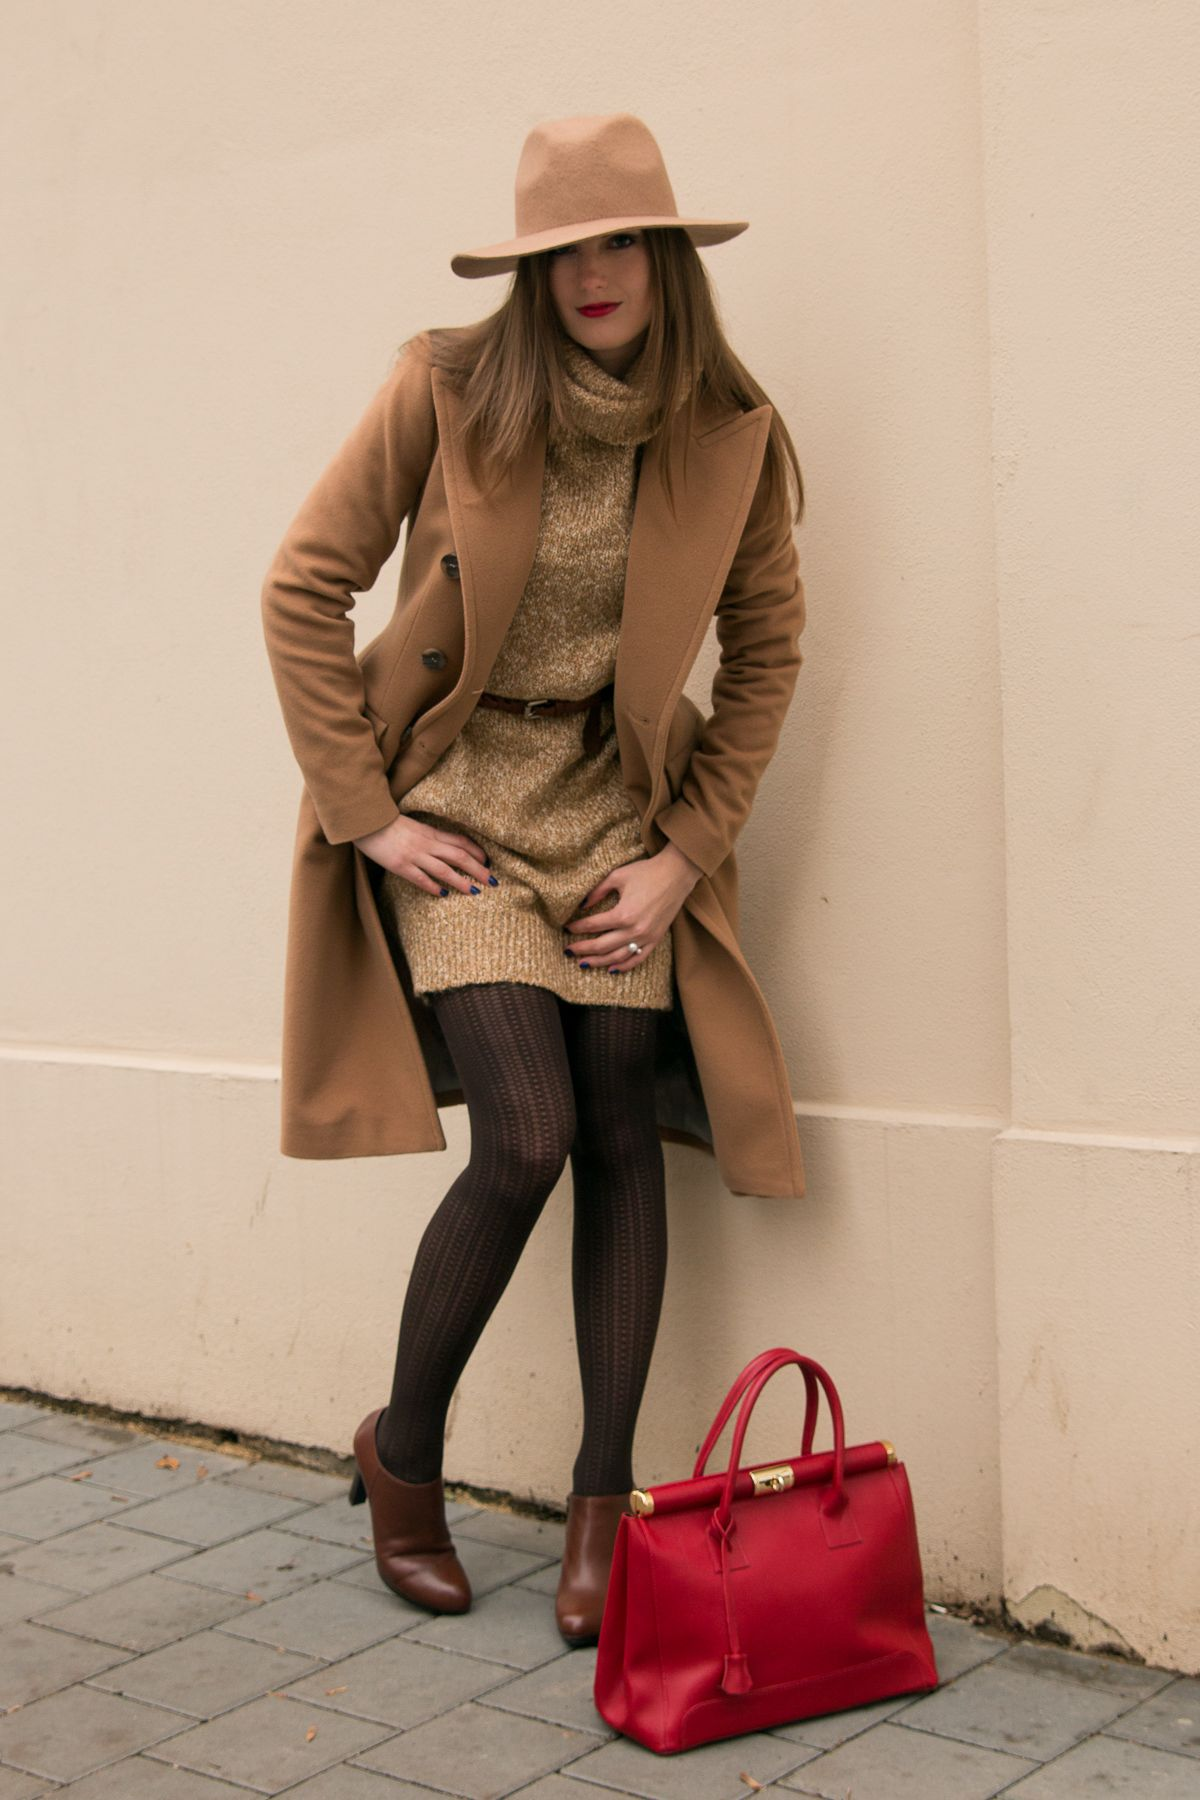 KNIT DRESS, OOTD, OUTFIT, HAT, RED BAG, NUDE, CAMEL COAT